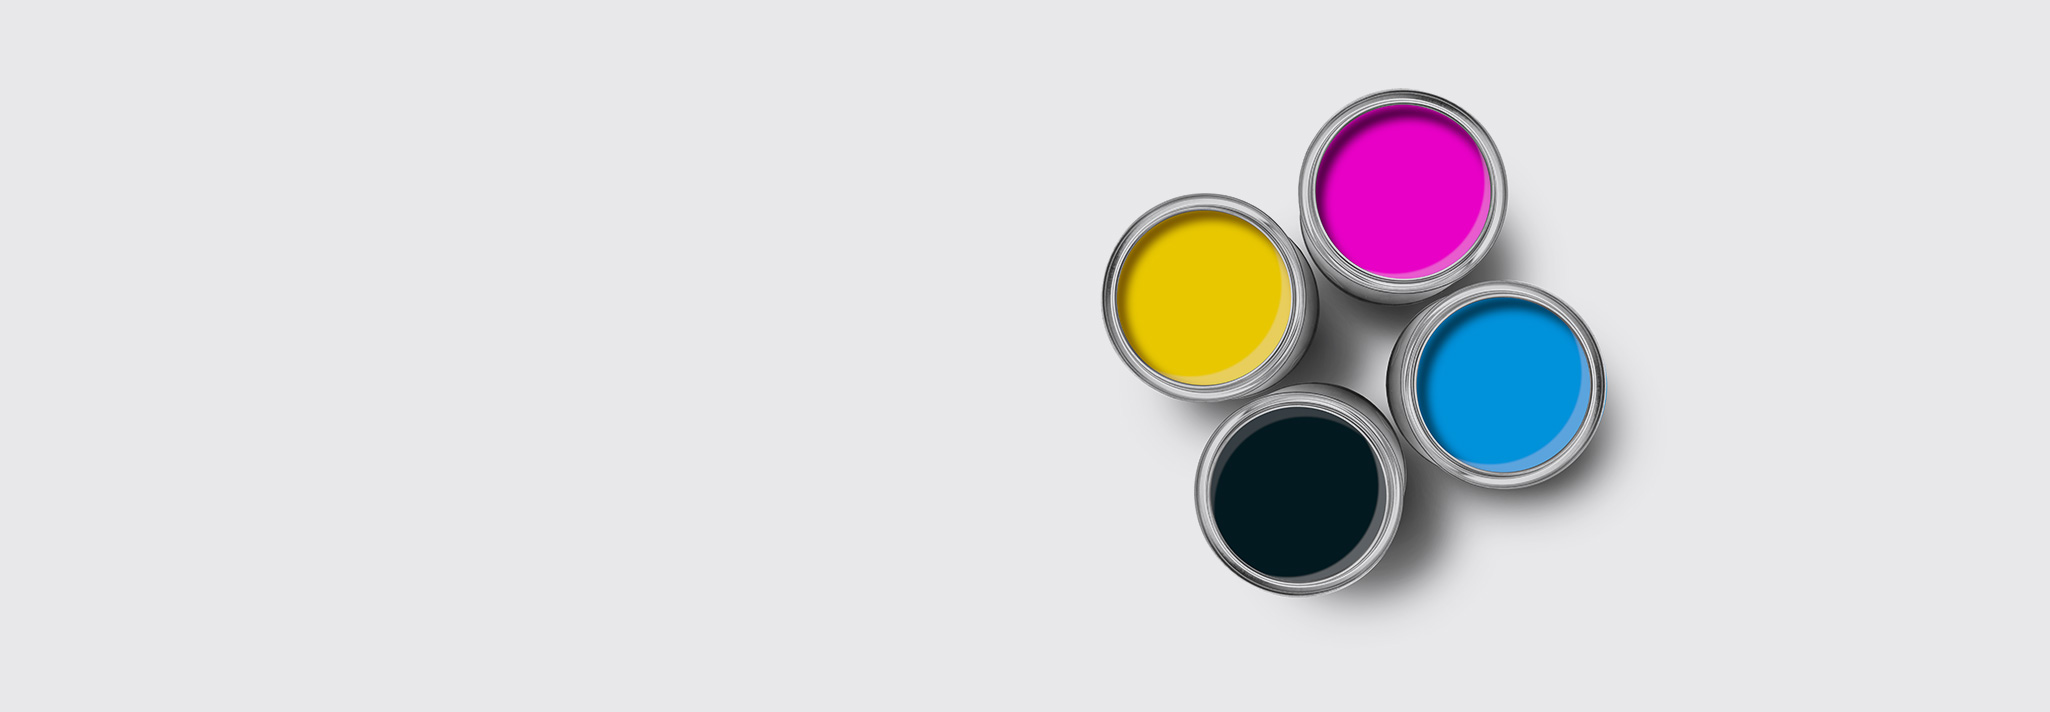 four paint cans from top - yellow - purple - blue - black